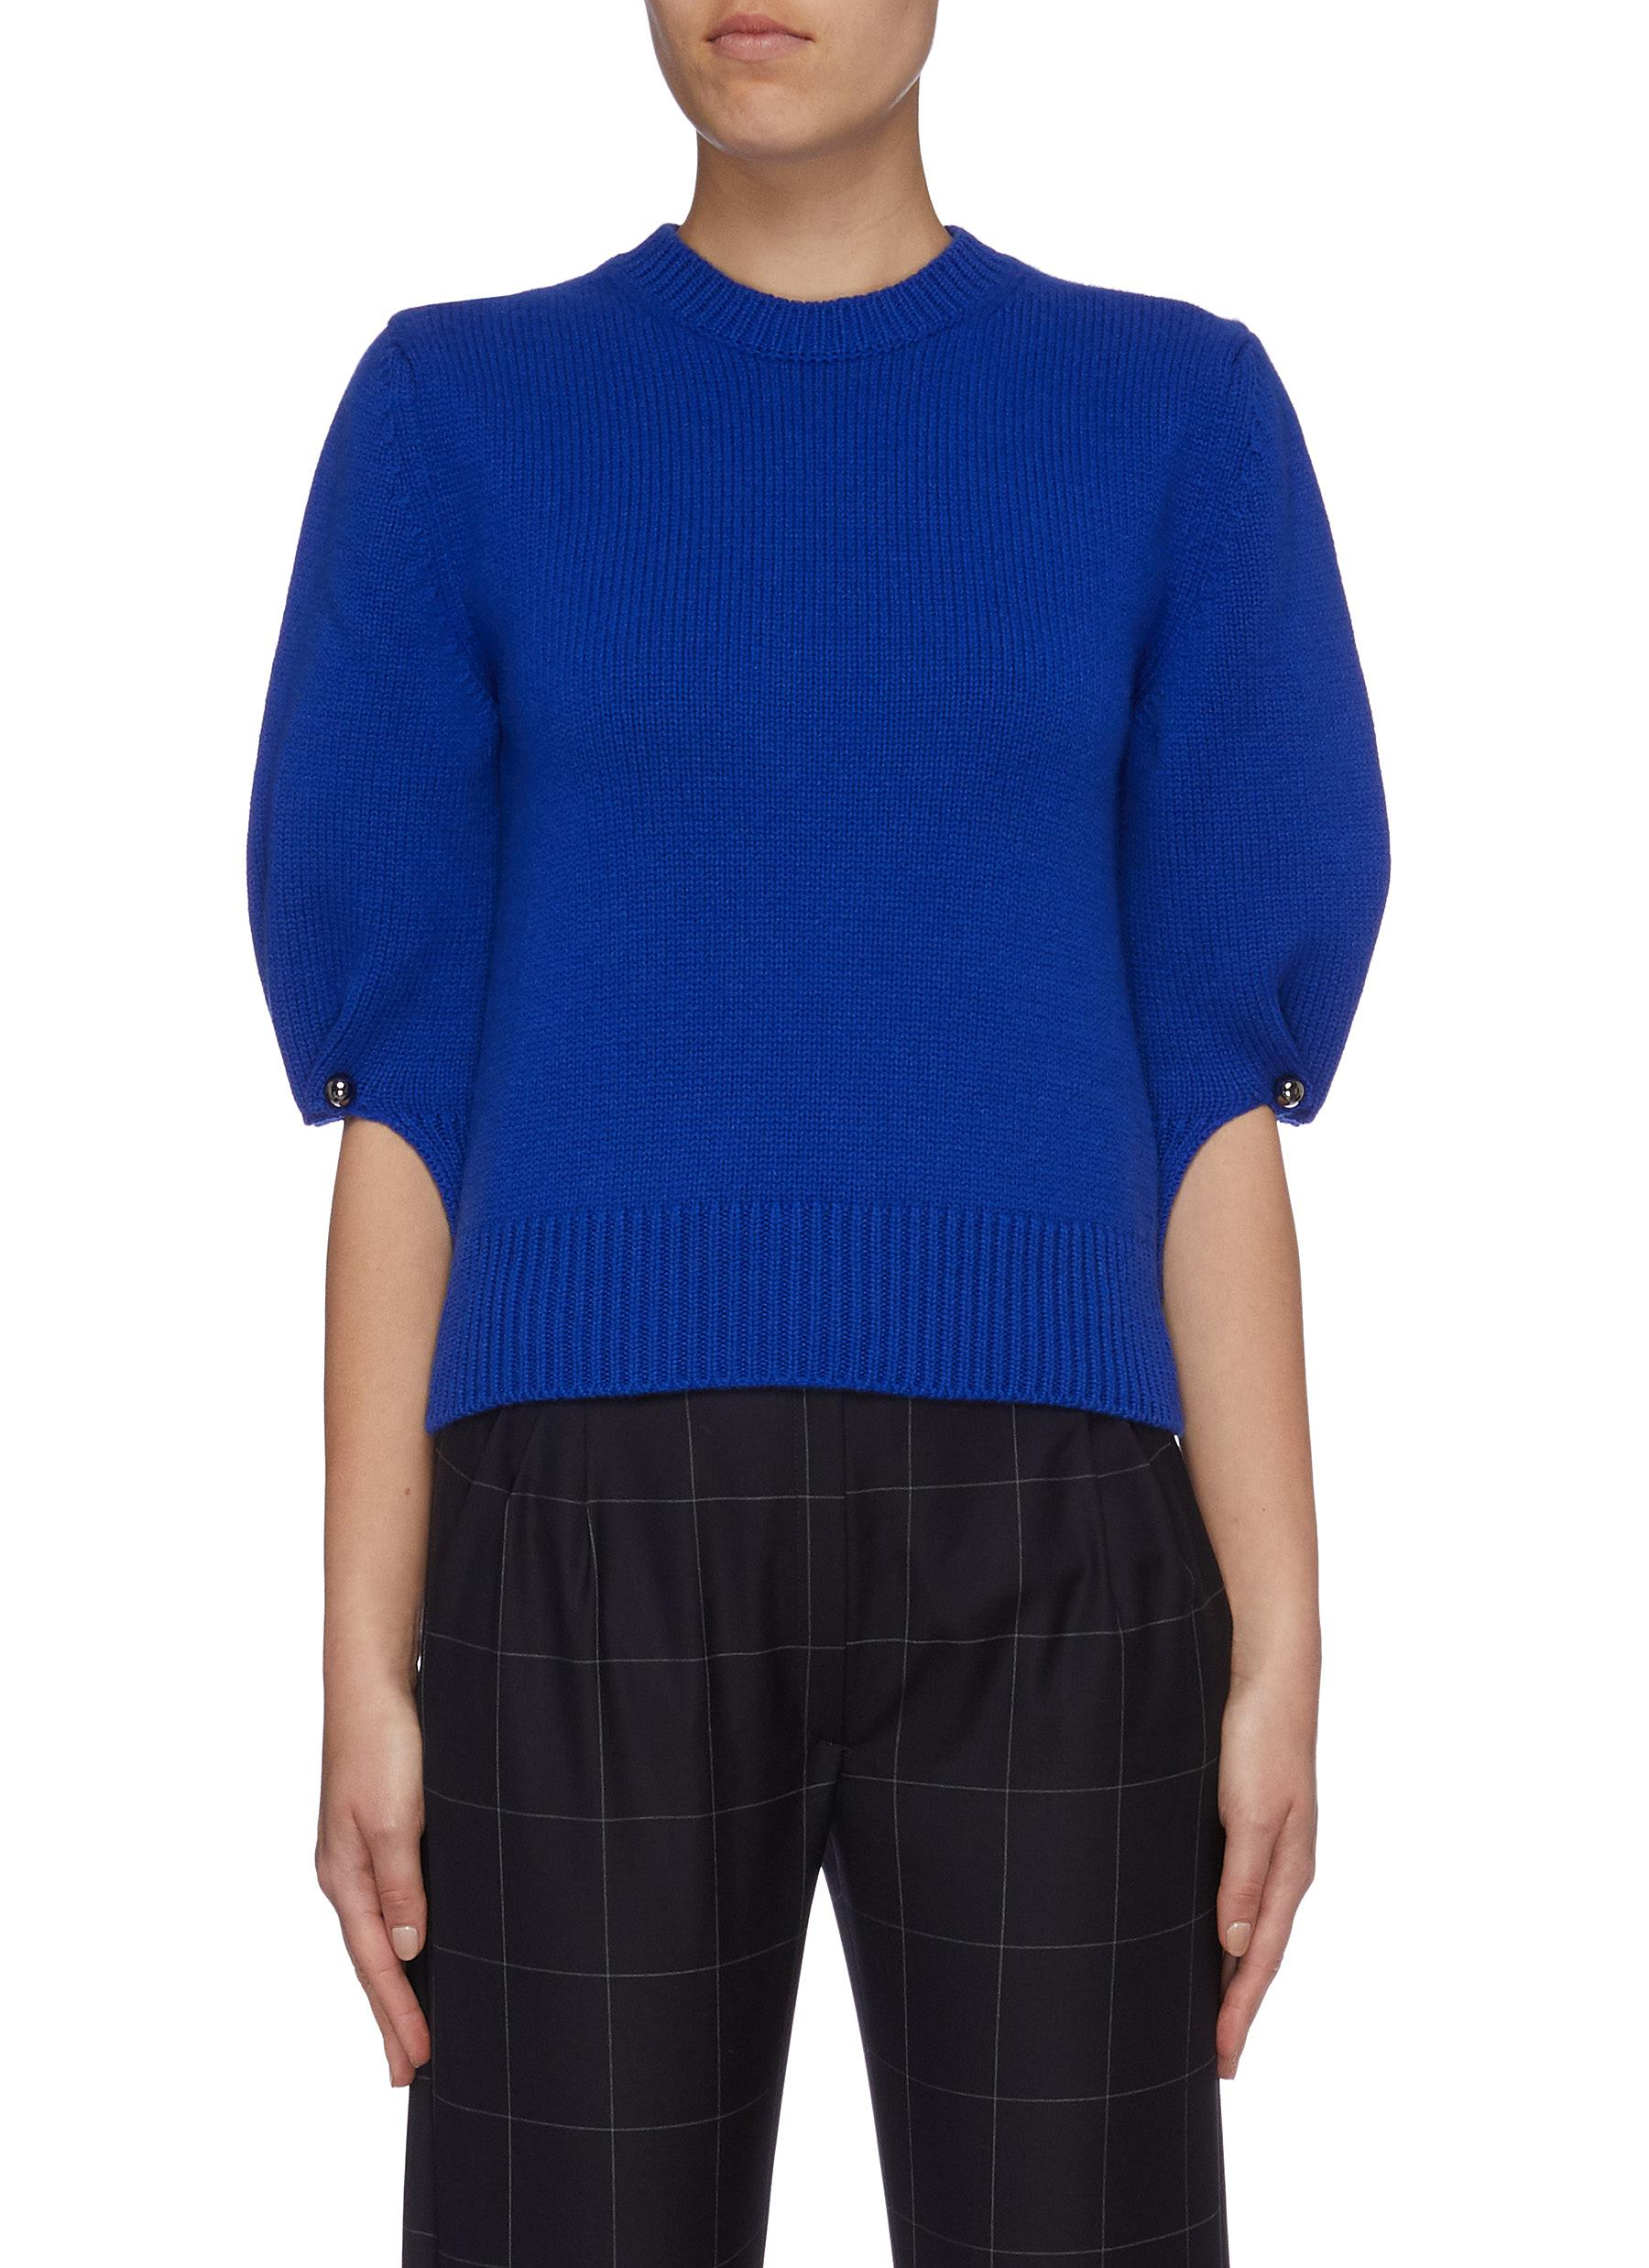 Pinned puff sleeve virgin wool-cashmere knit top by Mrz